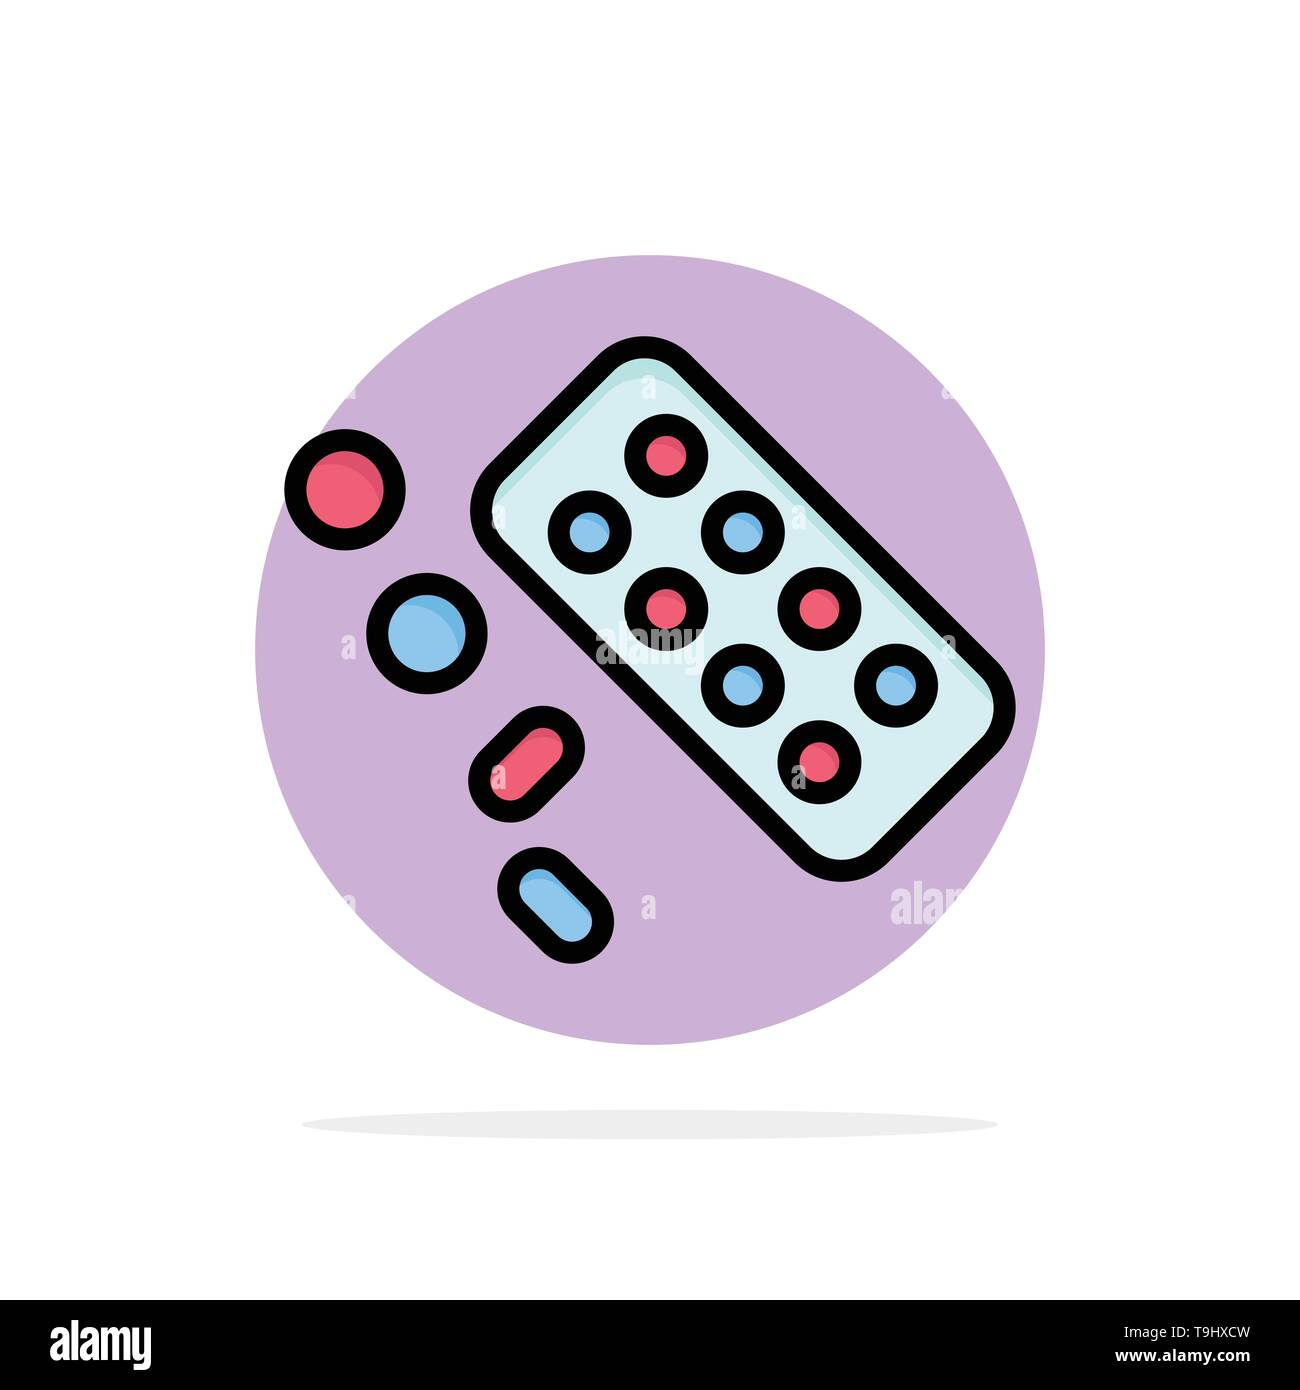 Medicine, Pill, Tablet, Treatment Abstract Circle Background Flat color Icon - Stock Image